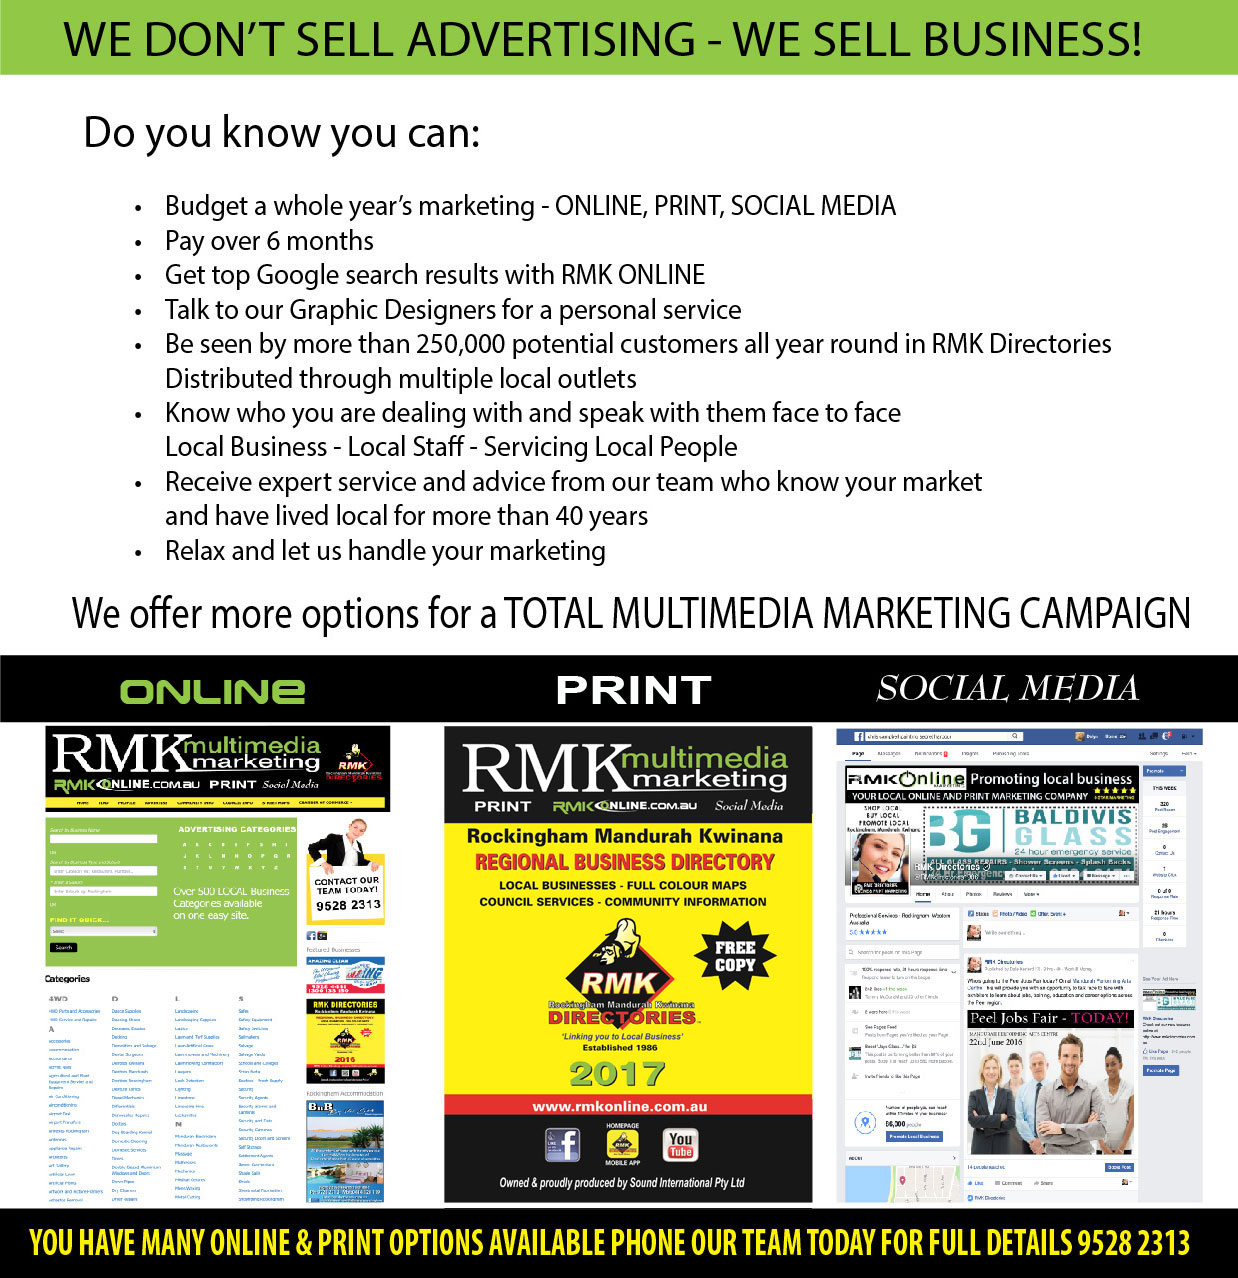 Advertise your Business with RMK Multimedia Marketing